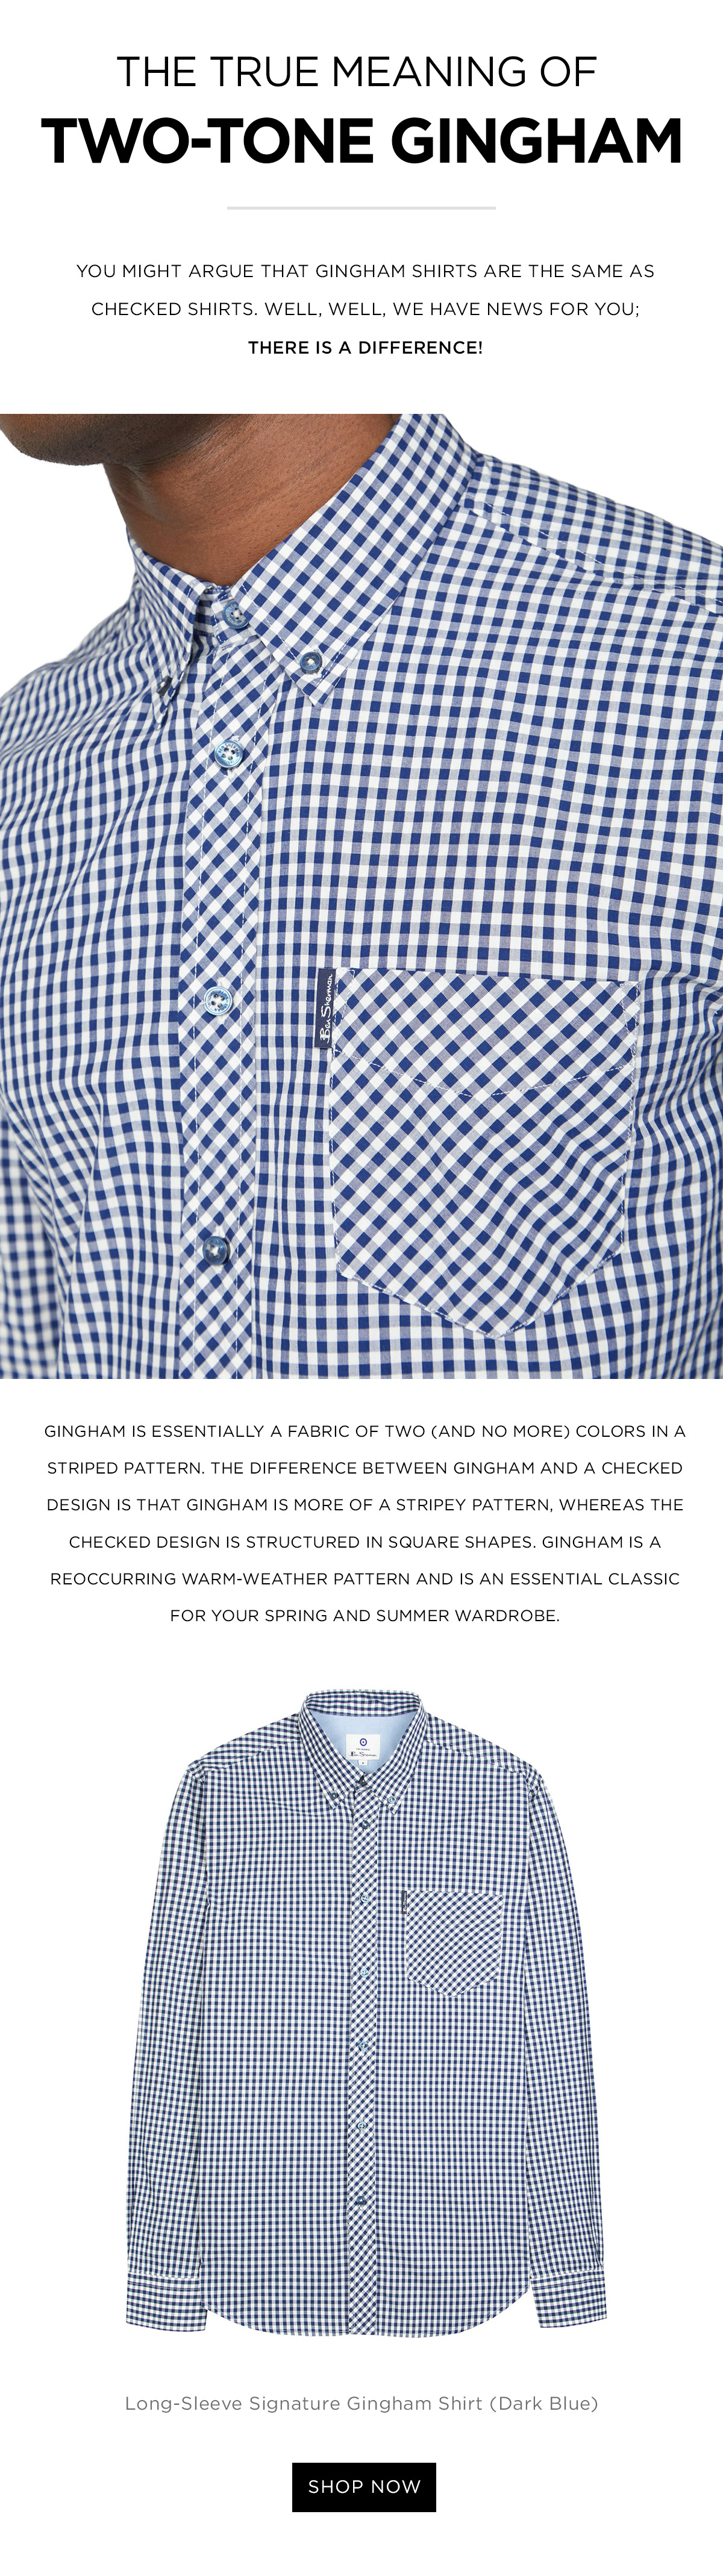 You might argue that gingham shirts are the same as checked shirts. Well, we have news for you: There is a difference!